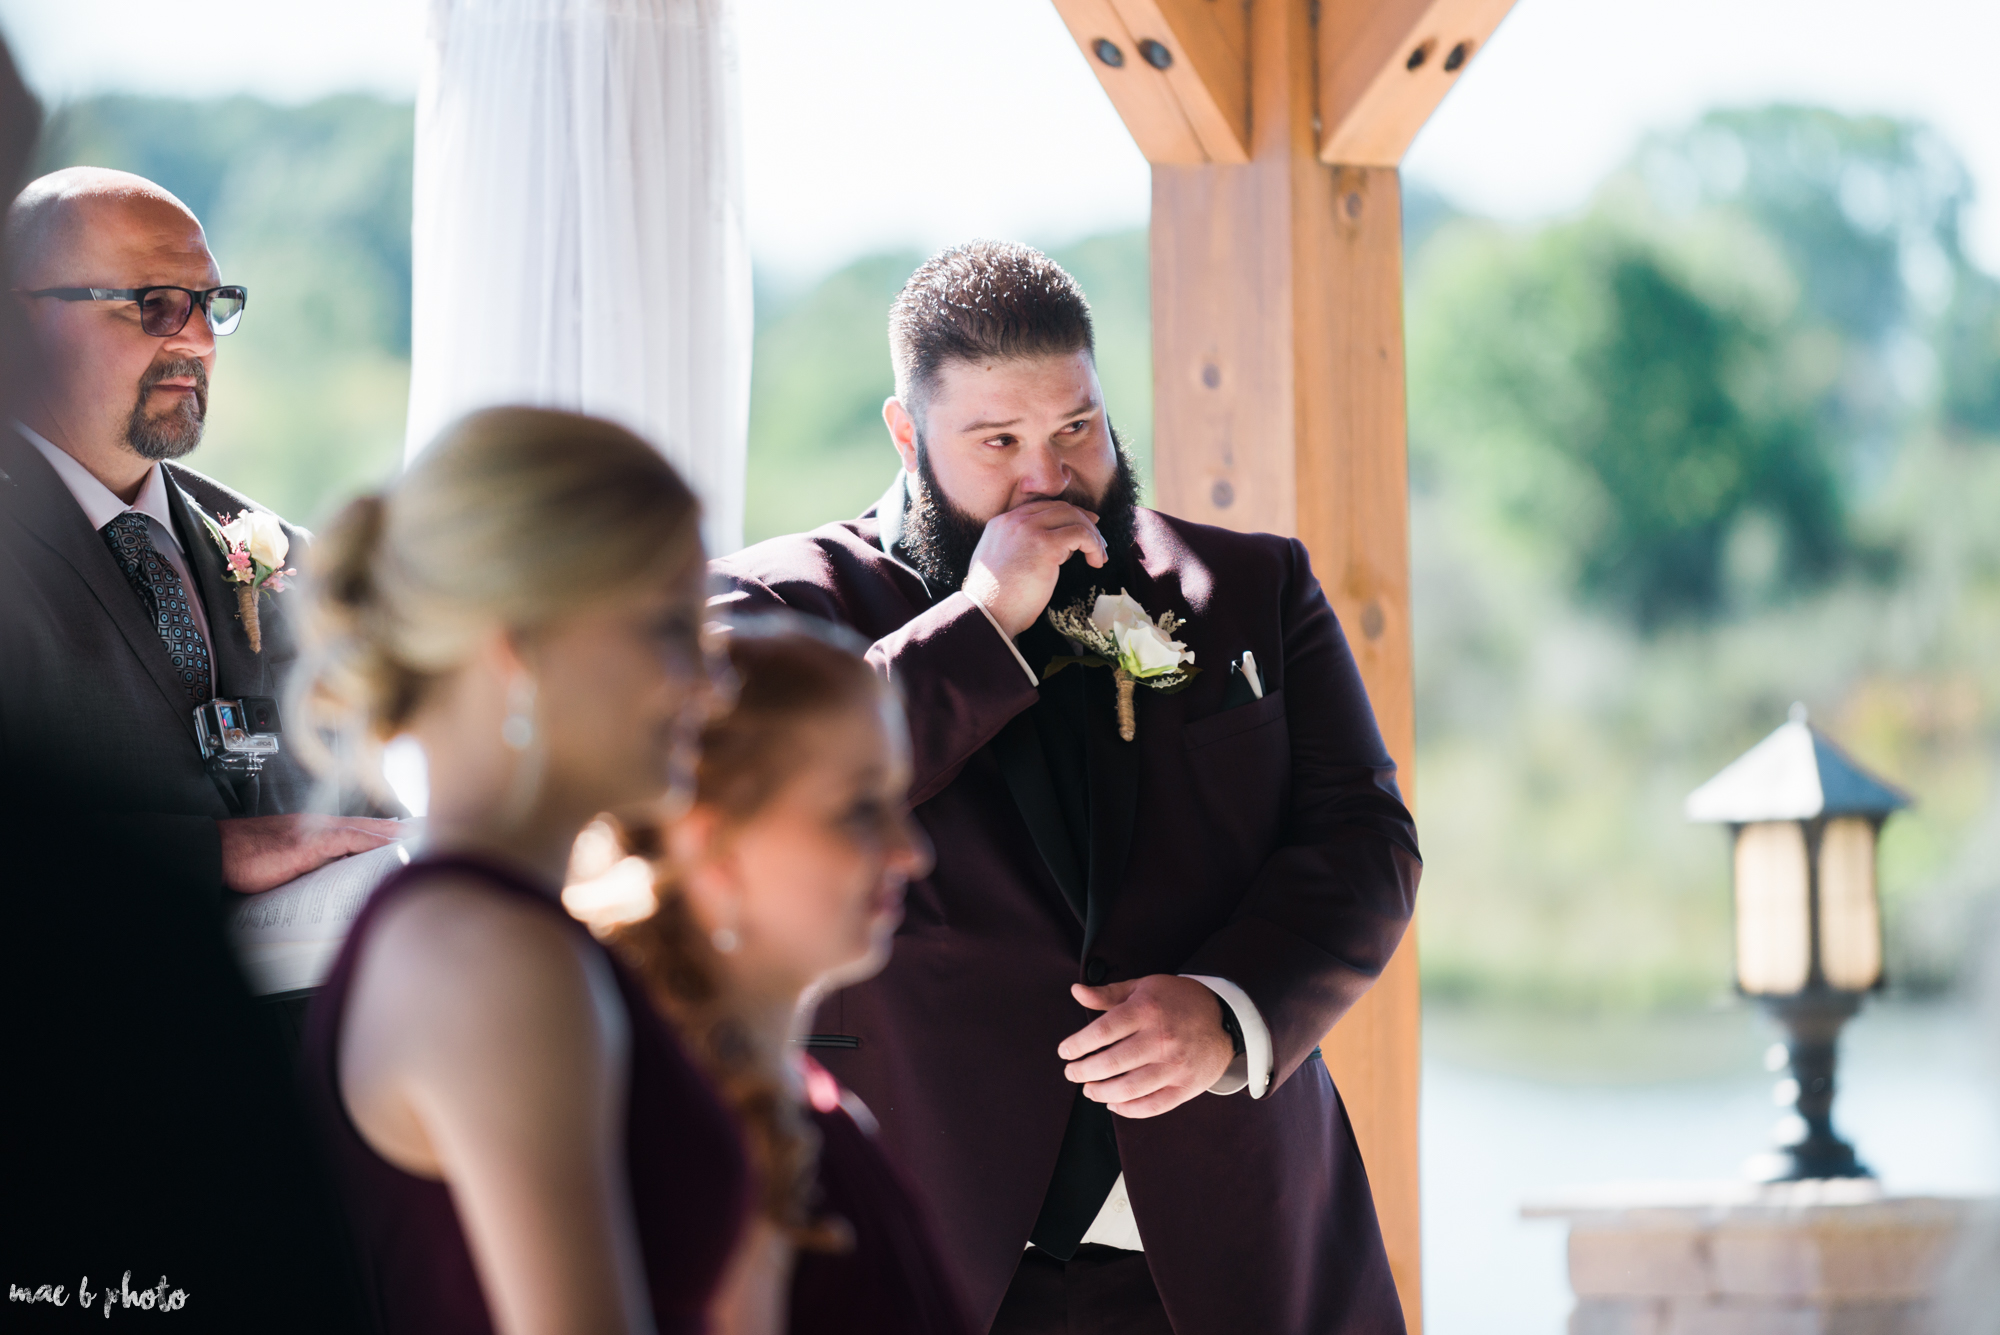 Amber & Kyle's Rustic Barn Wedding at SNPJ in Enon Valley, PA by Mae B Photo-42.jpg